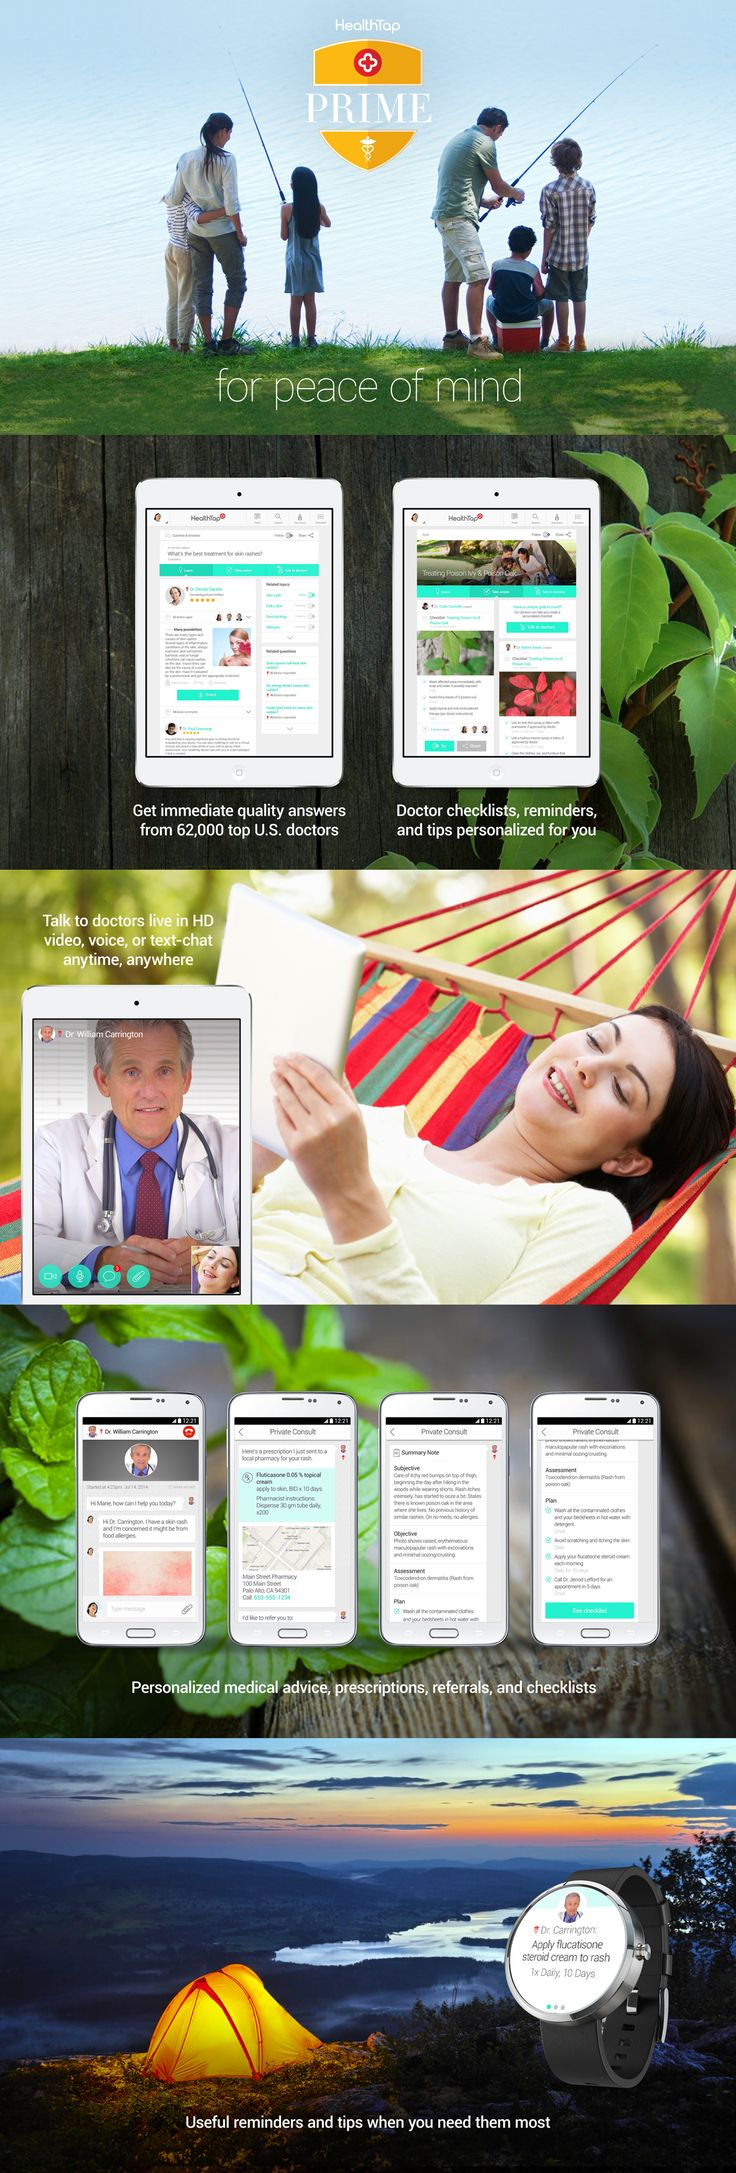 See what HealthTap Prime is all about